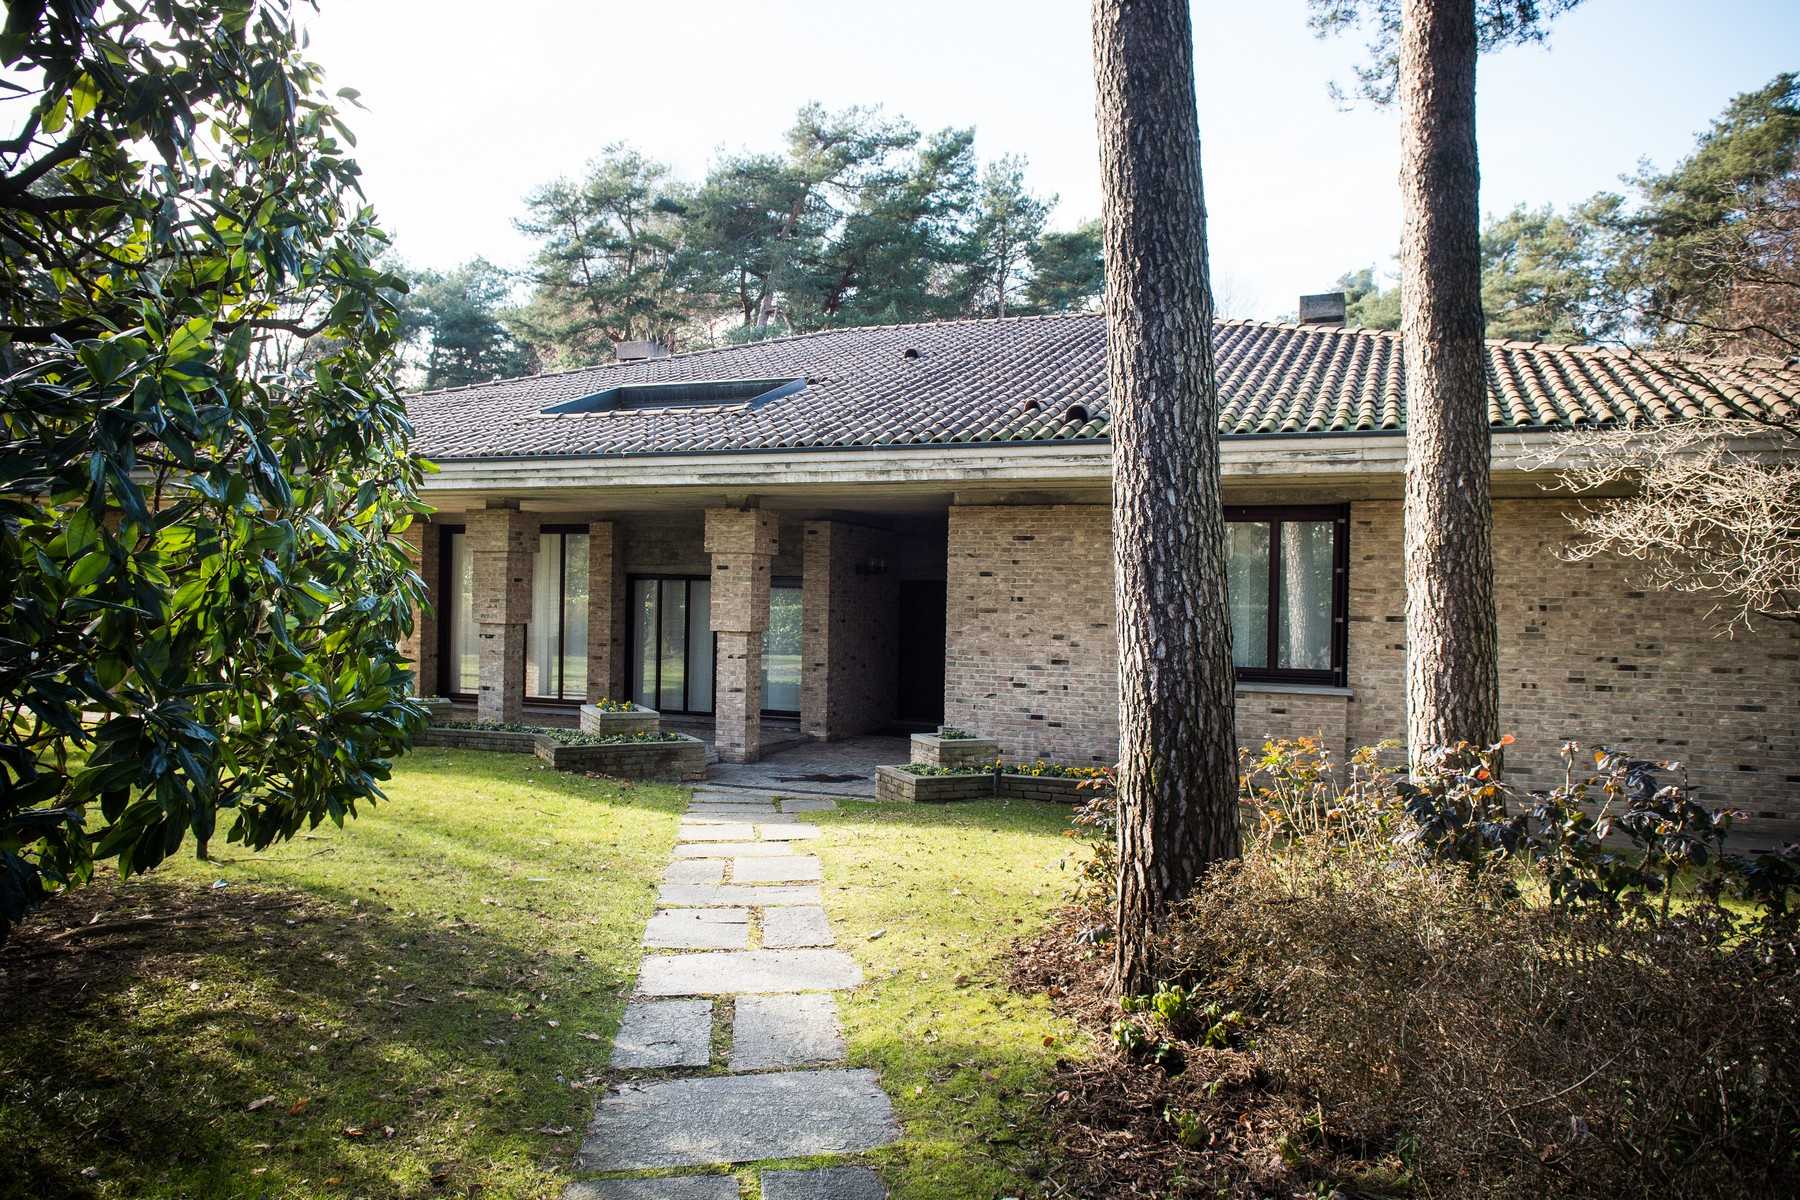 Additional photo for property listing at Modern villa with dépendance in Golf Club Pinetina Appiano Gentile Appiano Gentile, Como 22070 Italie